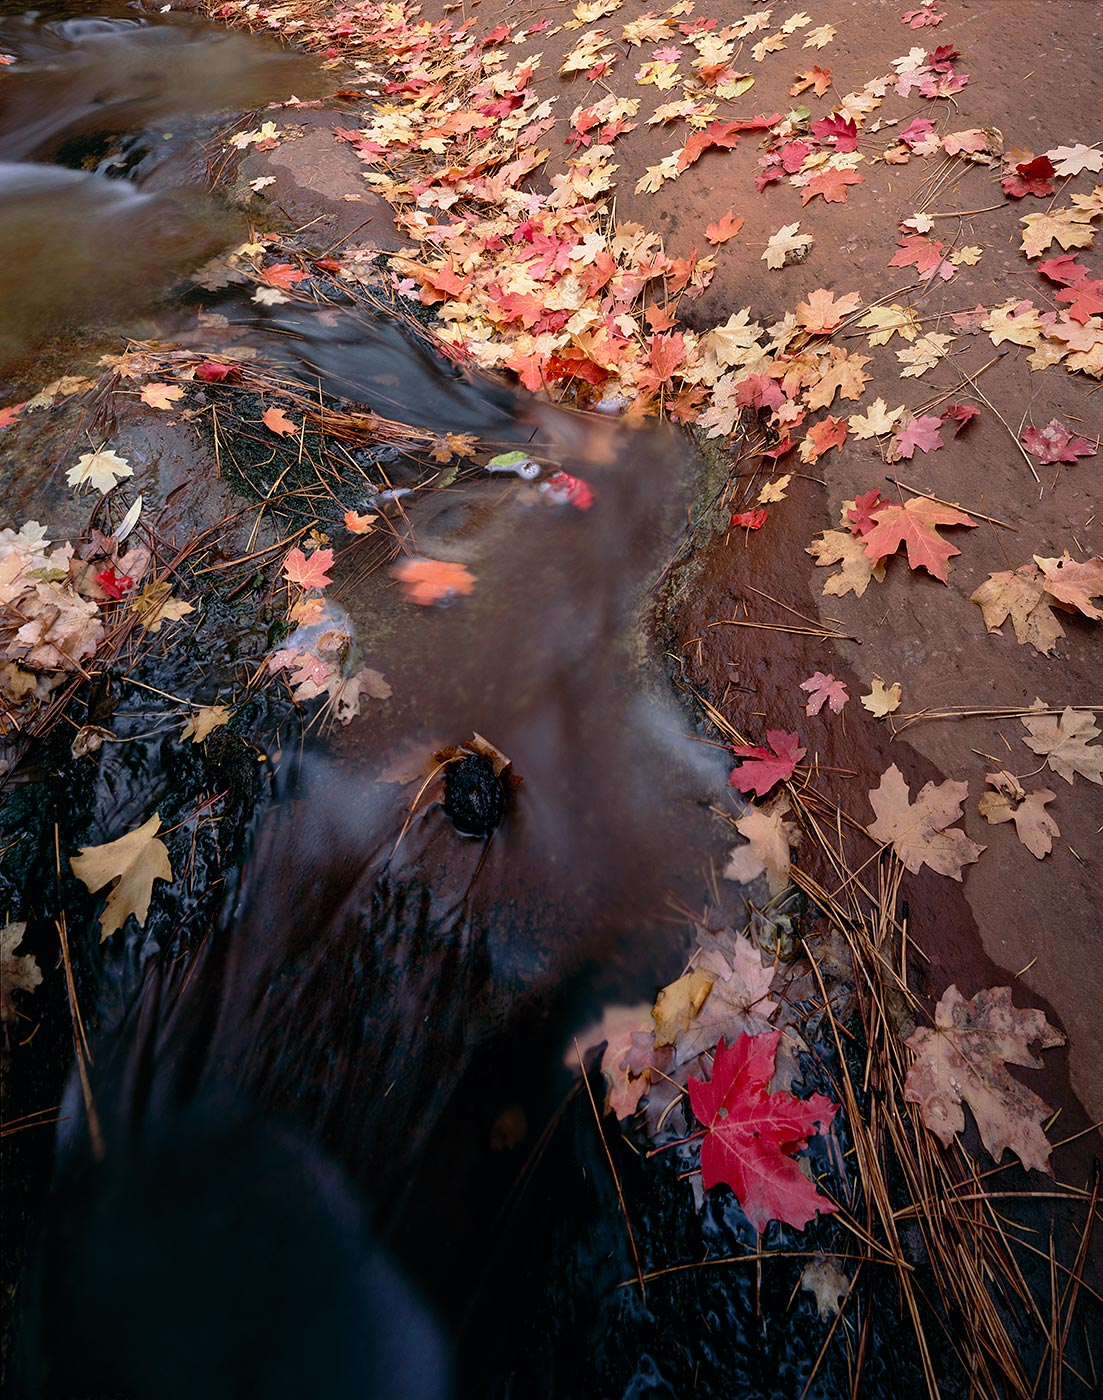 509 Maples in the Creek, Red Rock-Secret Mtn. Wilderness, Arizona